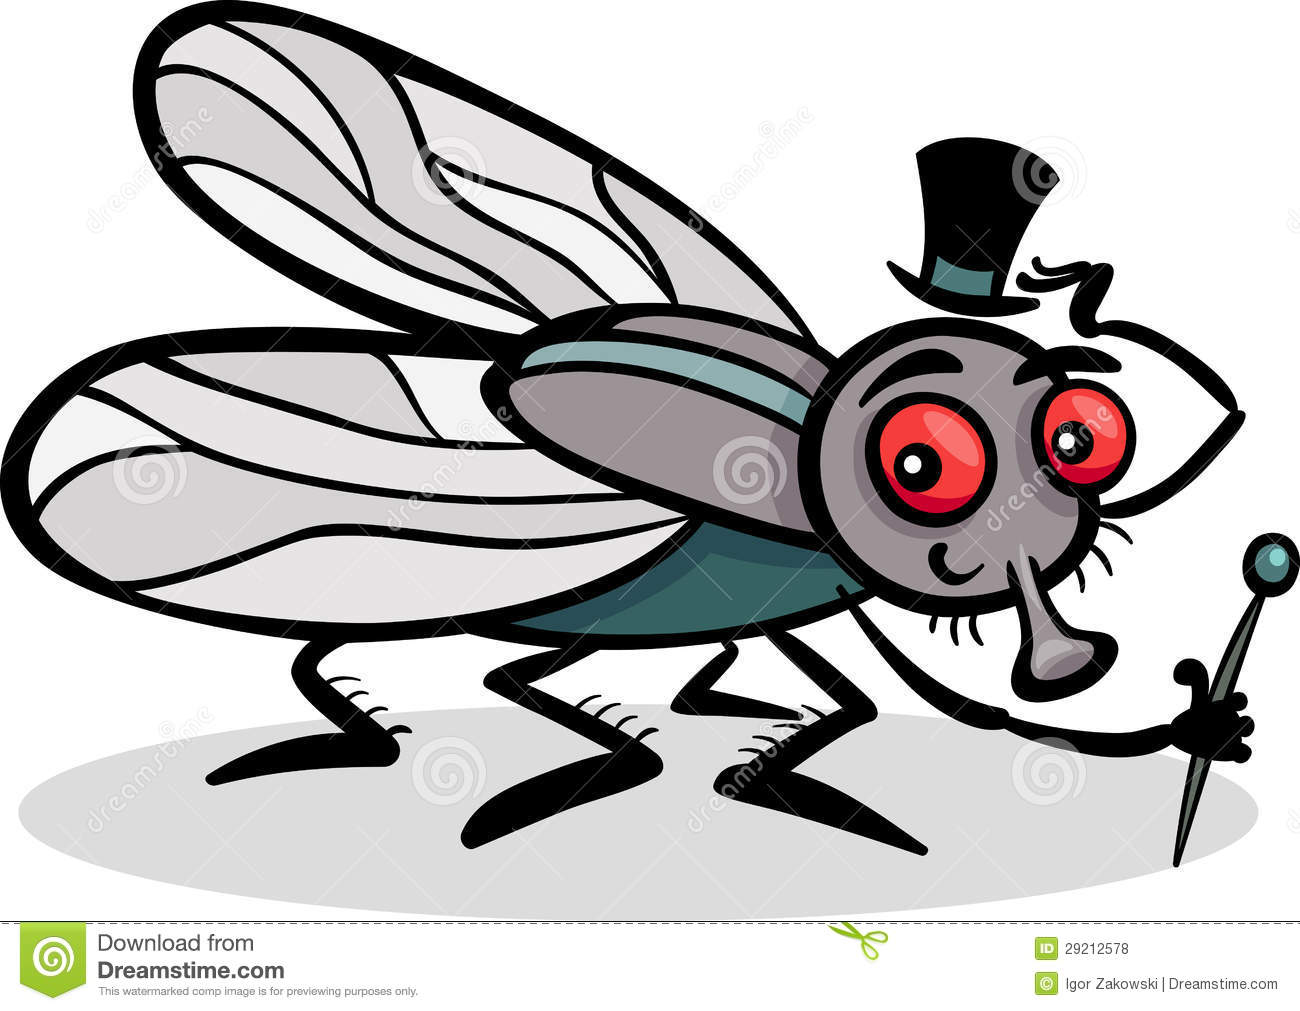 Cute house fly clipart.